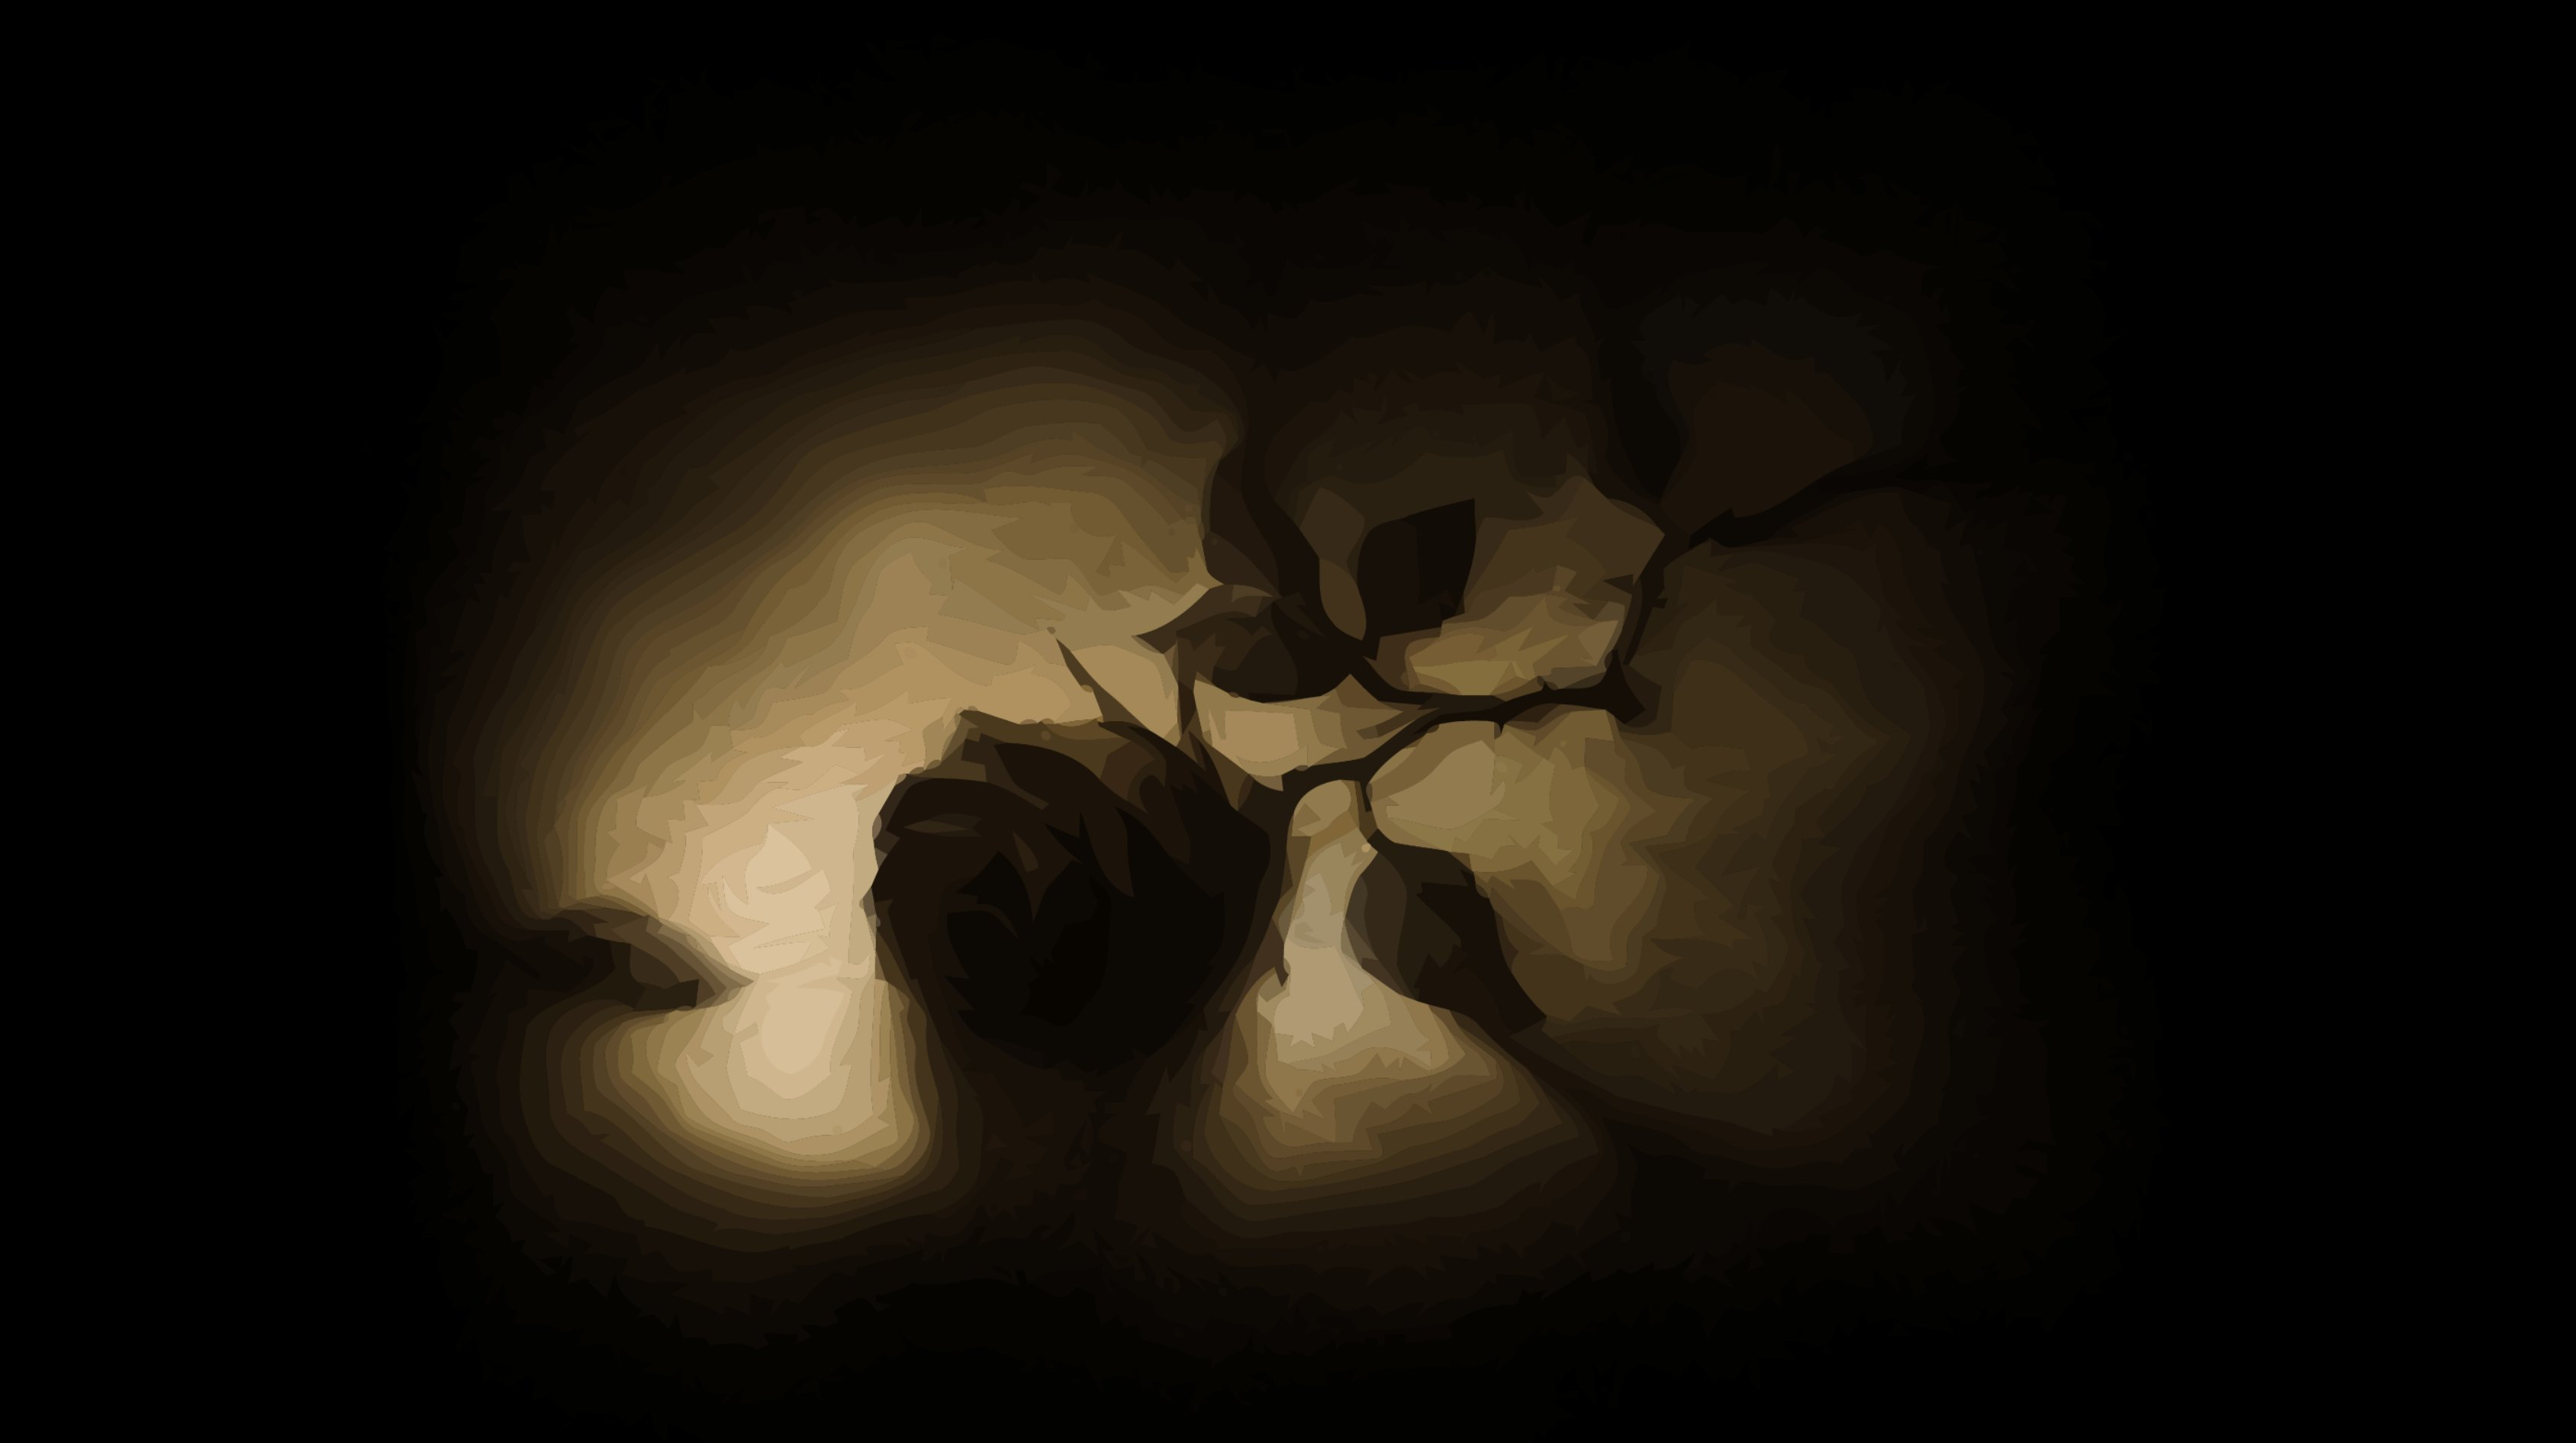 Rose From the Game Amnesia The Dark Descent HD wallpaper 3376x1891